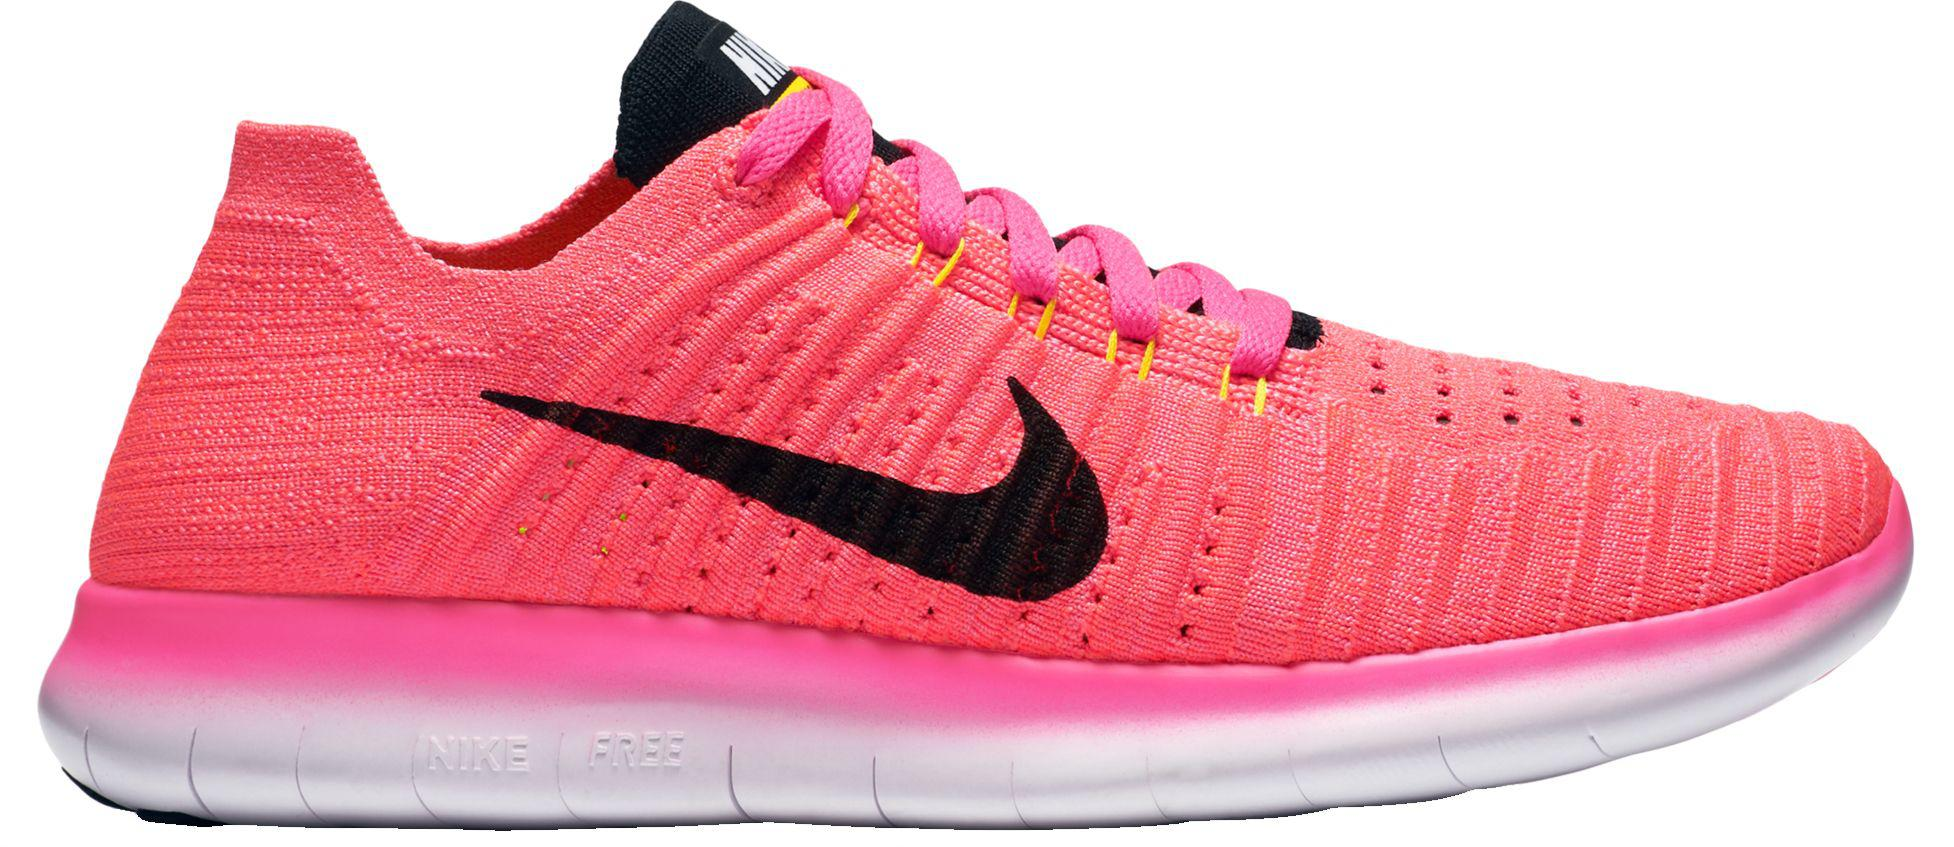 Nike - Pink Free Rn Flyknit Running Shoes - Lyst